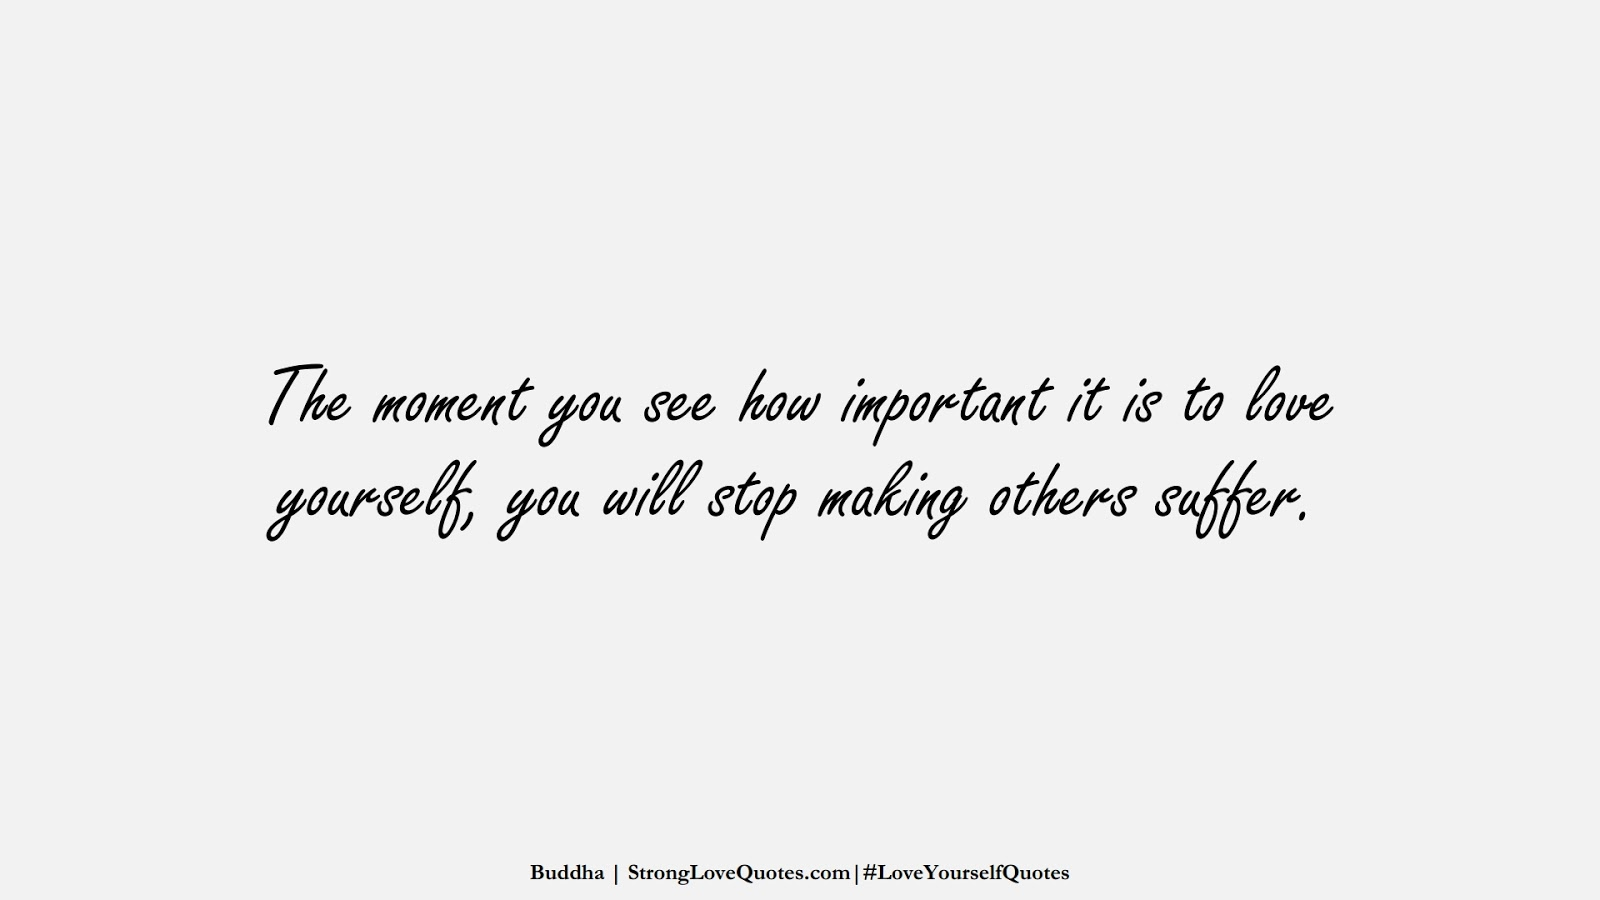 The moment you see how important it is to love yourself, you will stop making others suffer. (Buddha);  #LoveYourselfQuotes